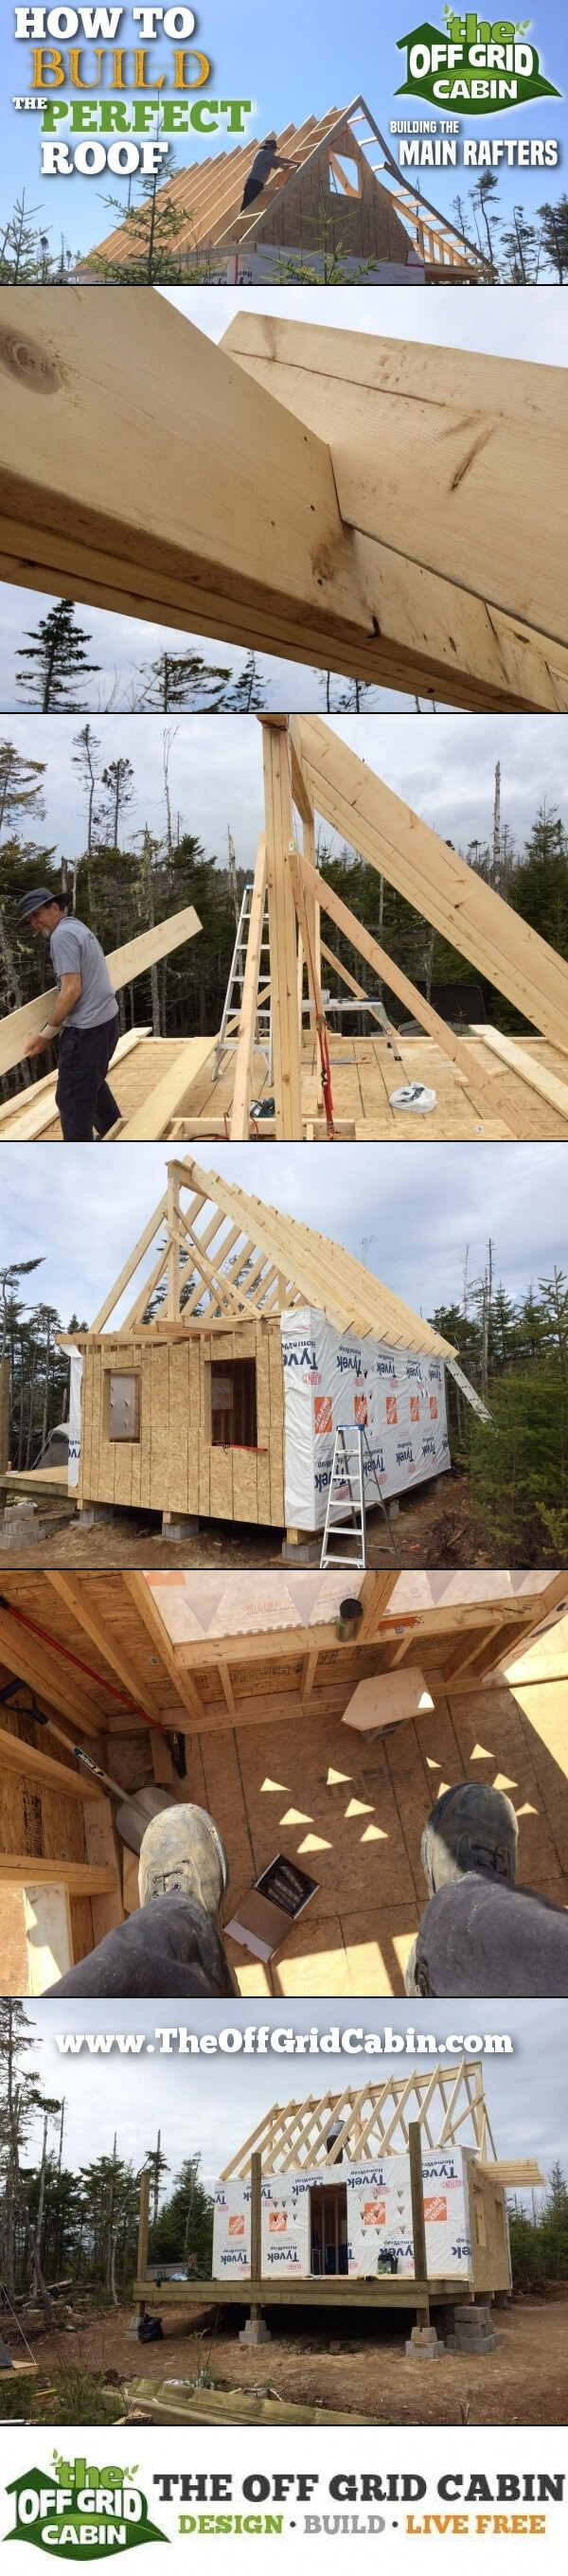 The Off Grid Cabin How To Build The Perfect Roof Main Rafters Pinterest Image